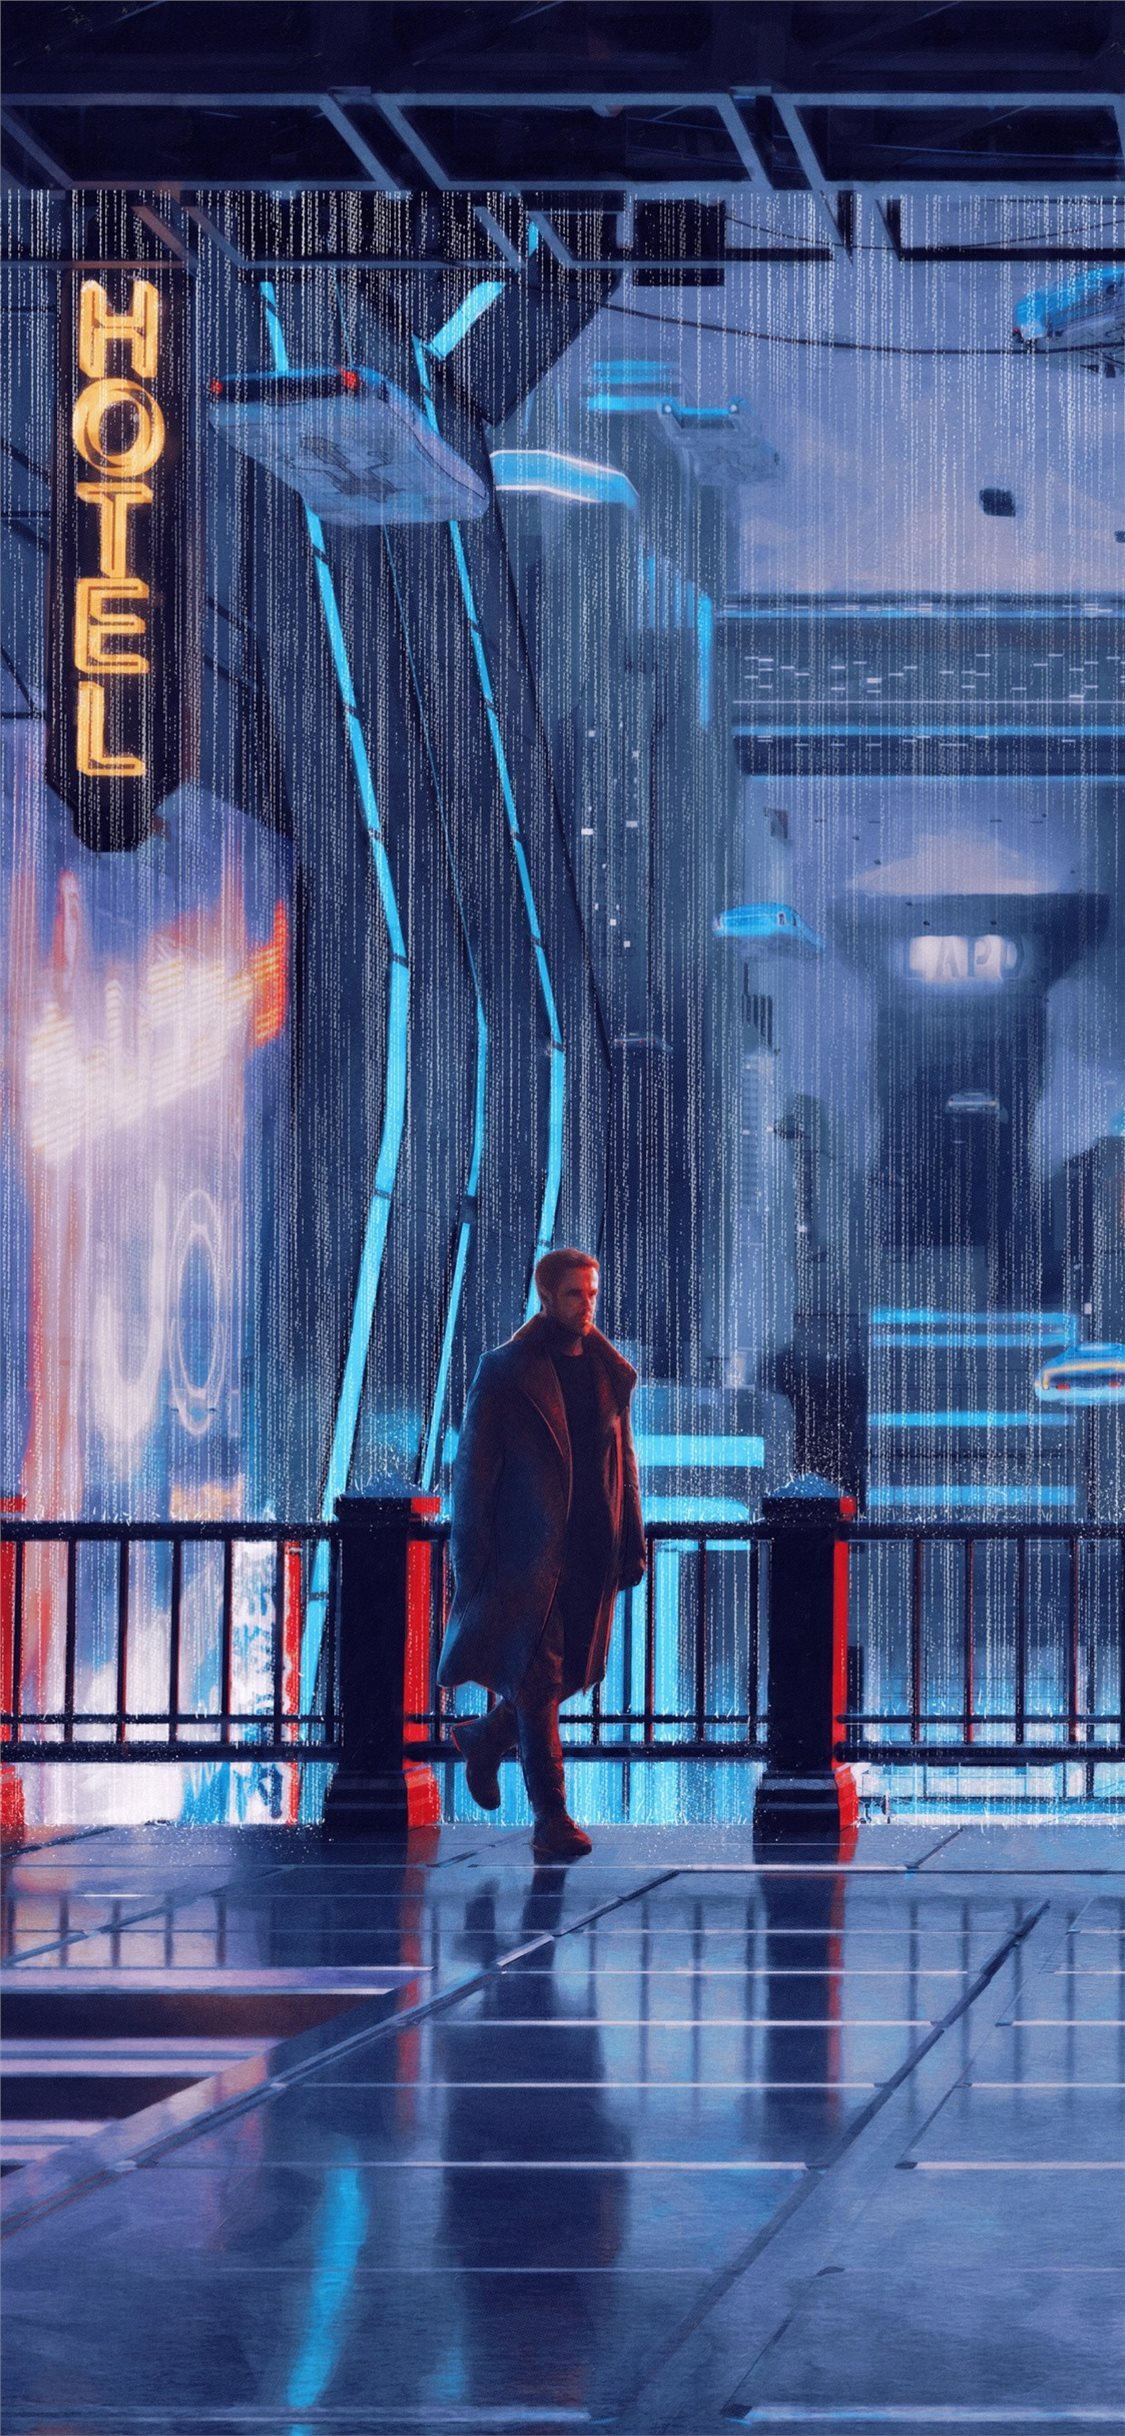 Blade Runner 2049 Arts Iphone Wallpapers Free Download